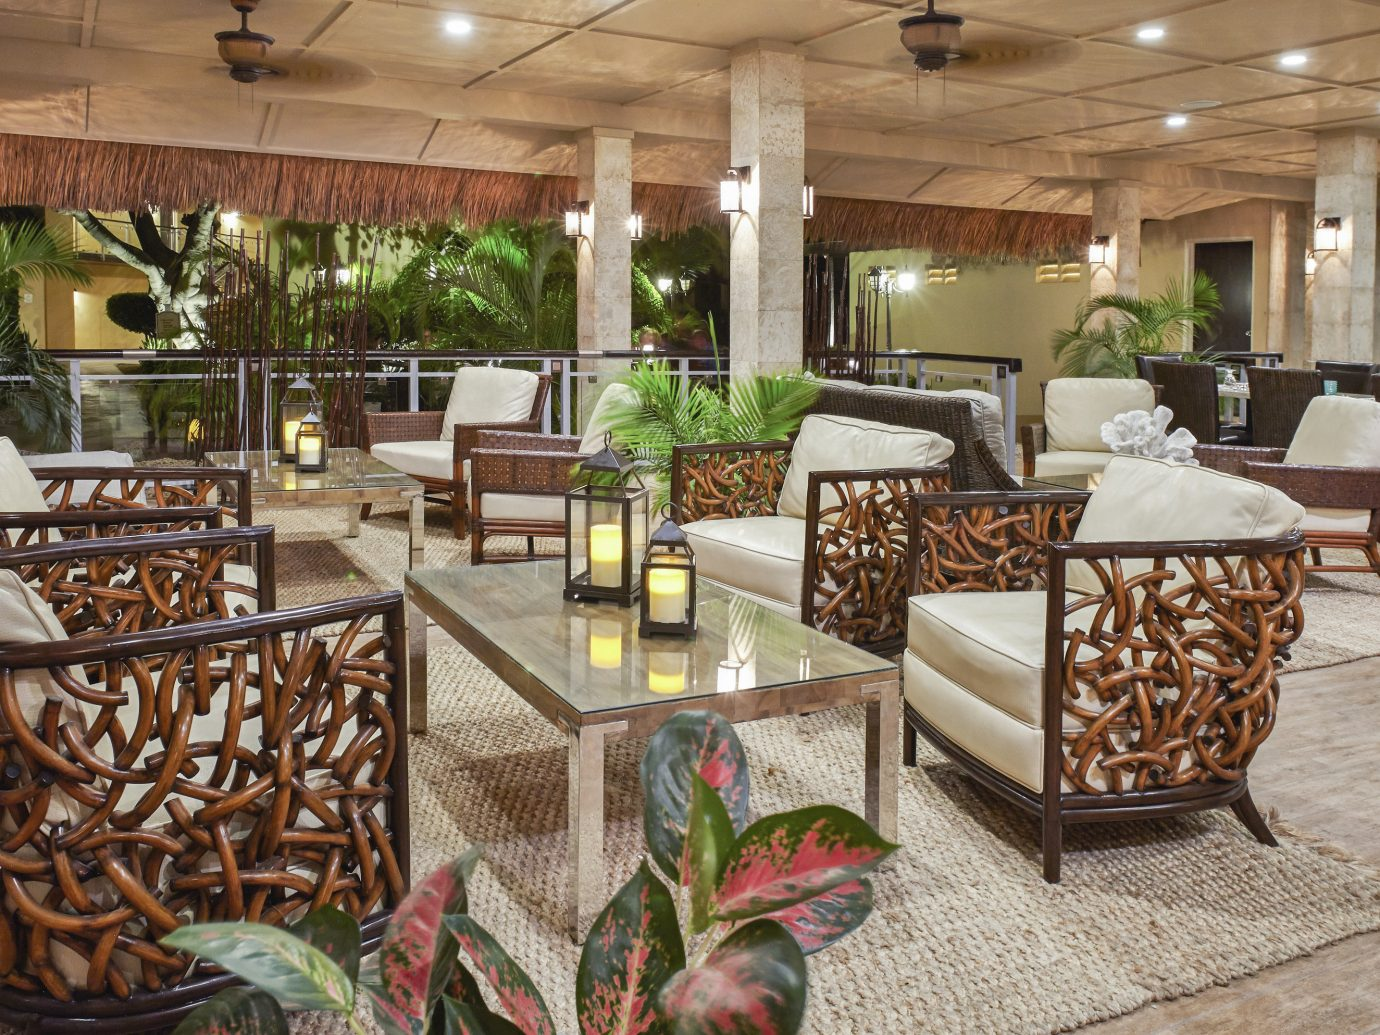 Aruba caribbean Hotels indoor chair floor property Lobby room ceiling estate restaurant home interior design real estate furniture Design area